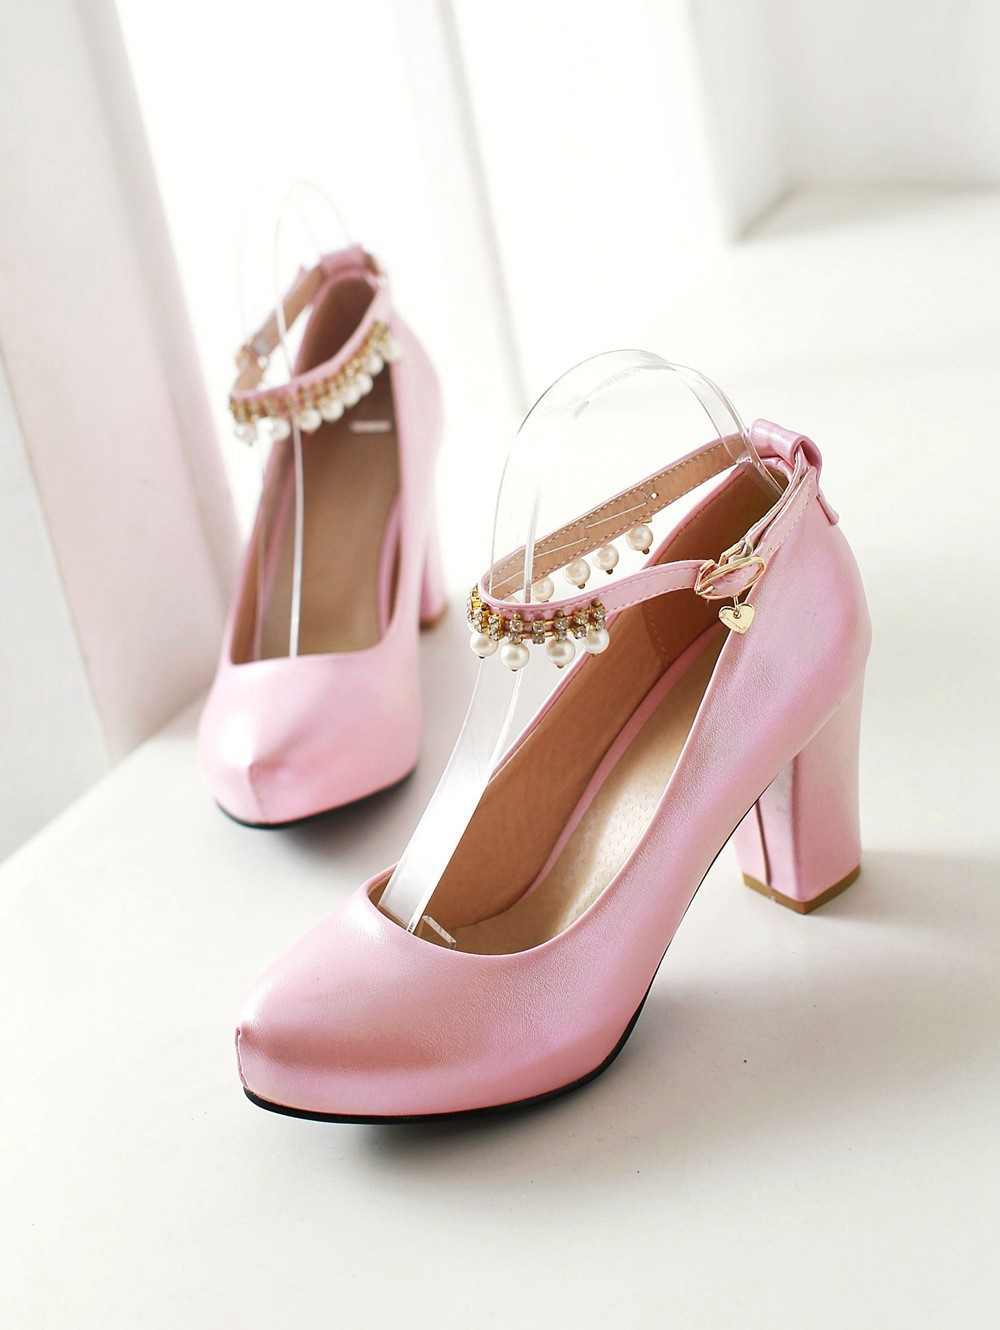 2017 Chunky High Heeled Pink Bridal Wedding Shoes Beaded White Female Buckle Elegant Pumps Silver Gold40